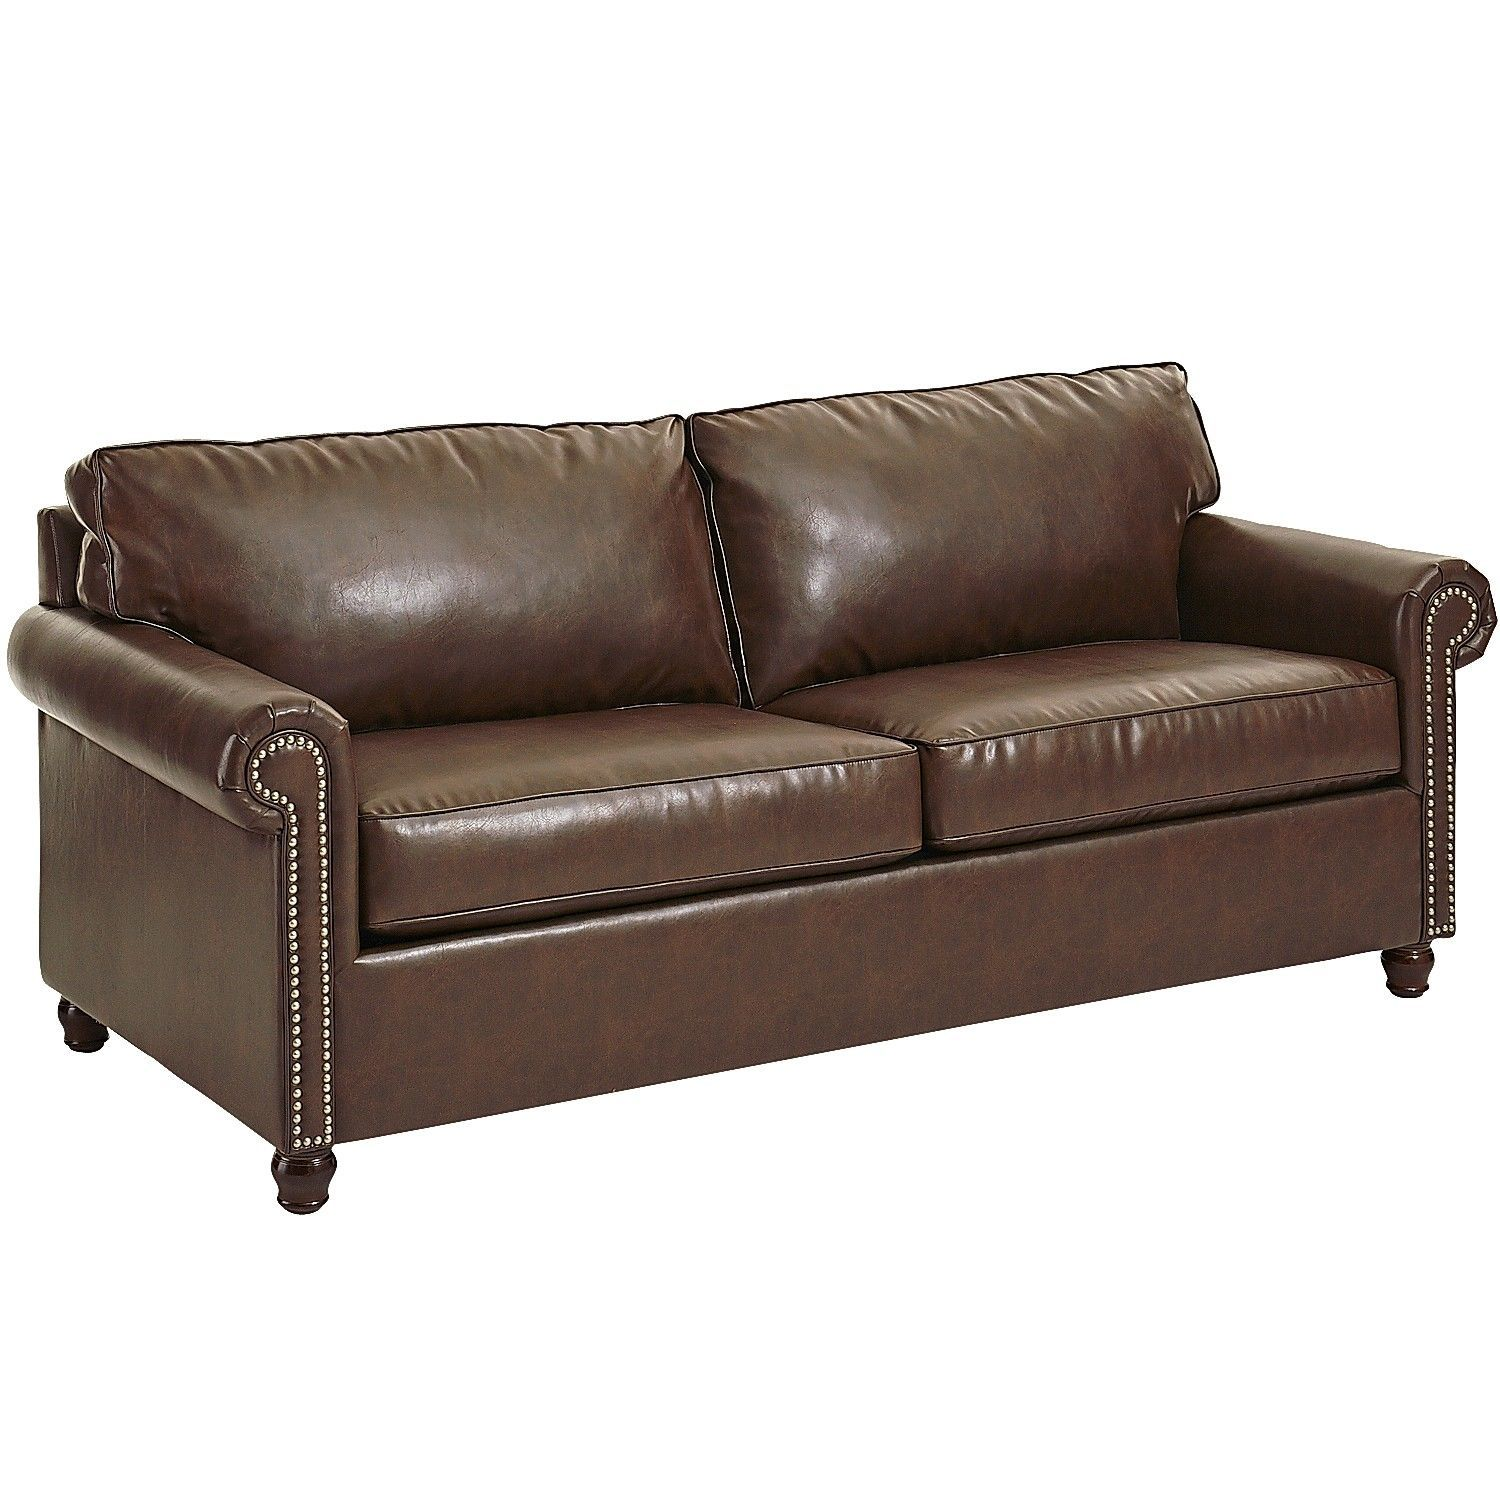 Best Alton Sleeper Sofa Tobacco Brown Pier 1 Imports 400 x 300